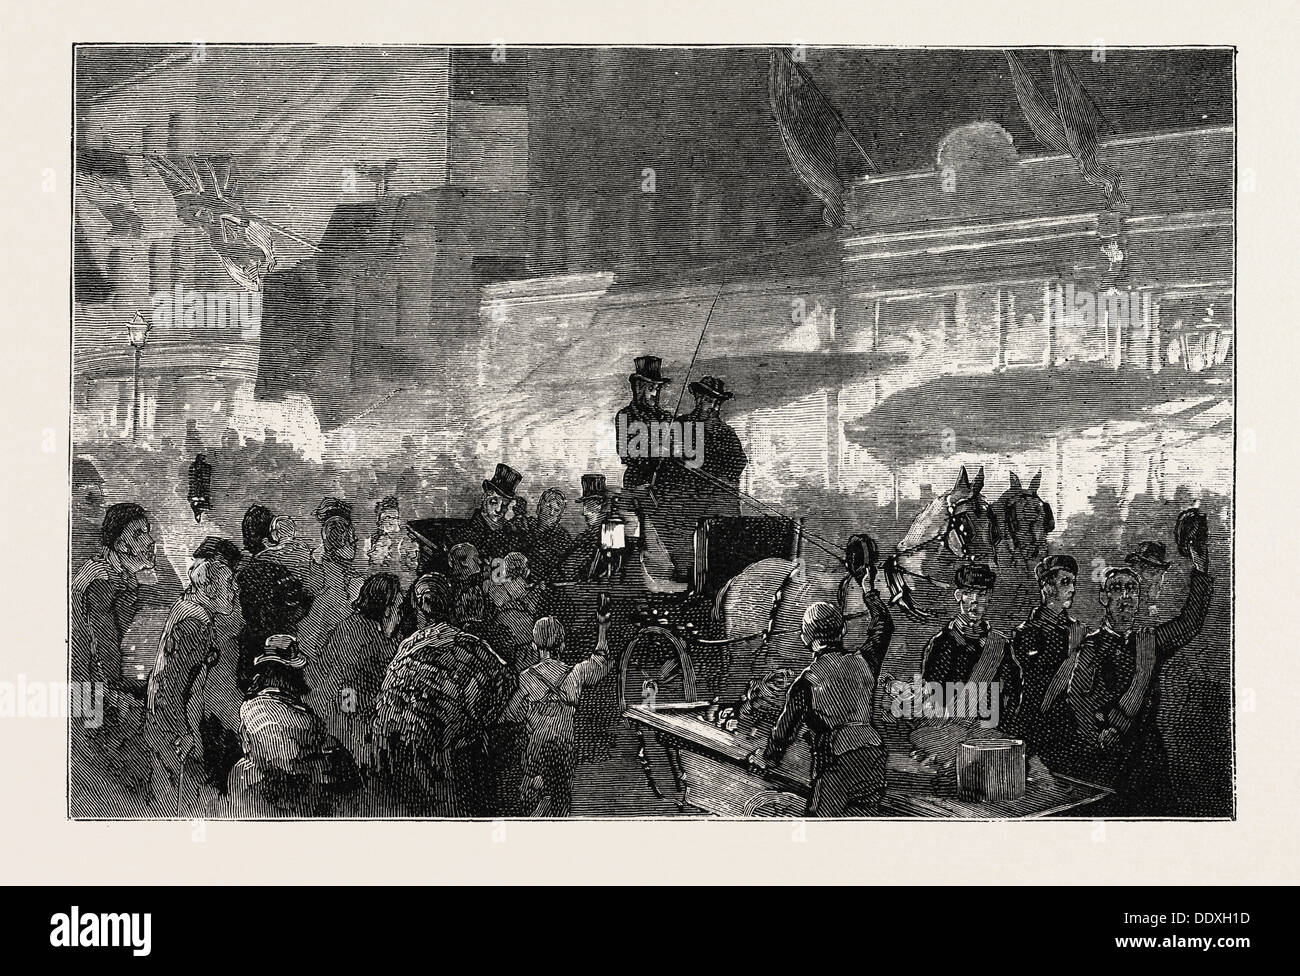 LORD SHAFTESBURY GOING TO OPEN THE COSTERS' HALL, HOXTON, 1875 - Stock Image